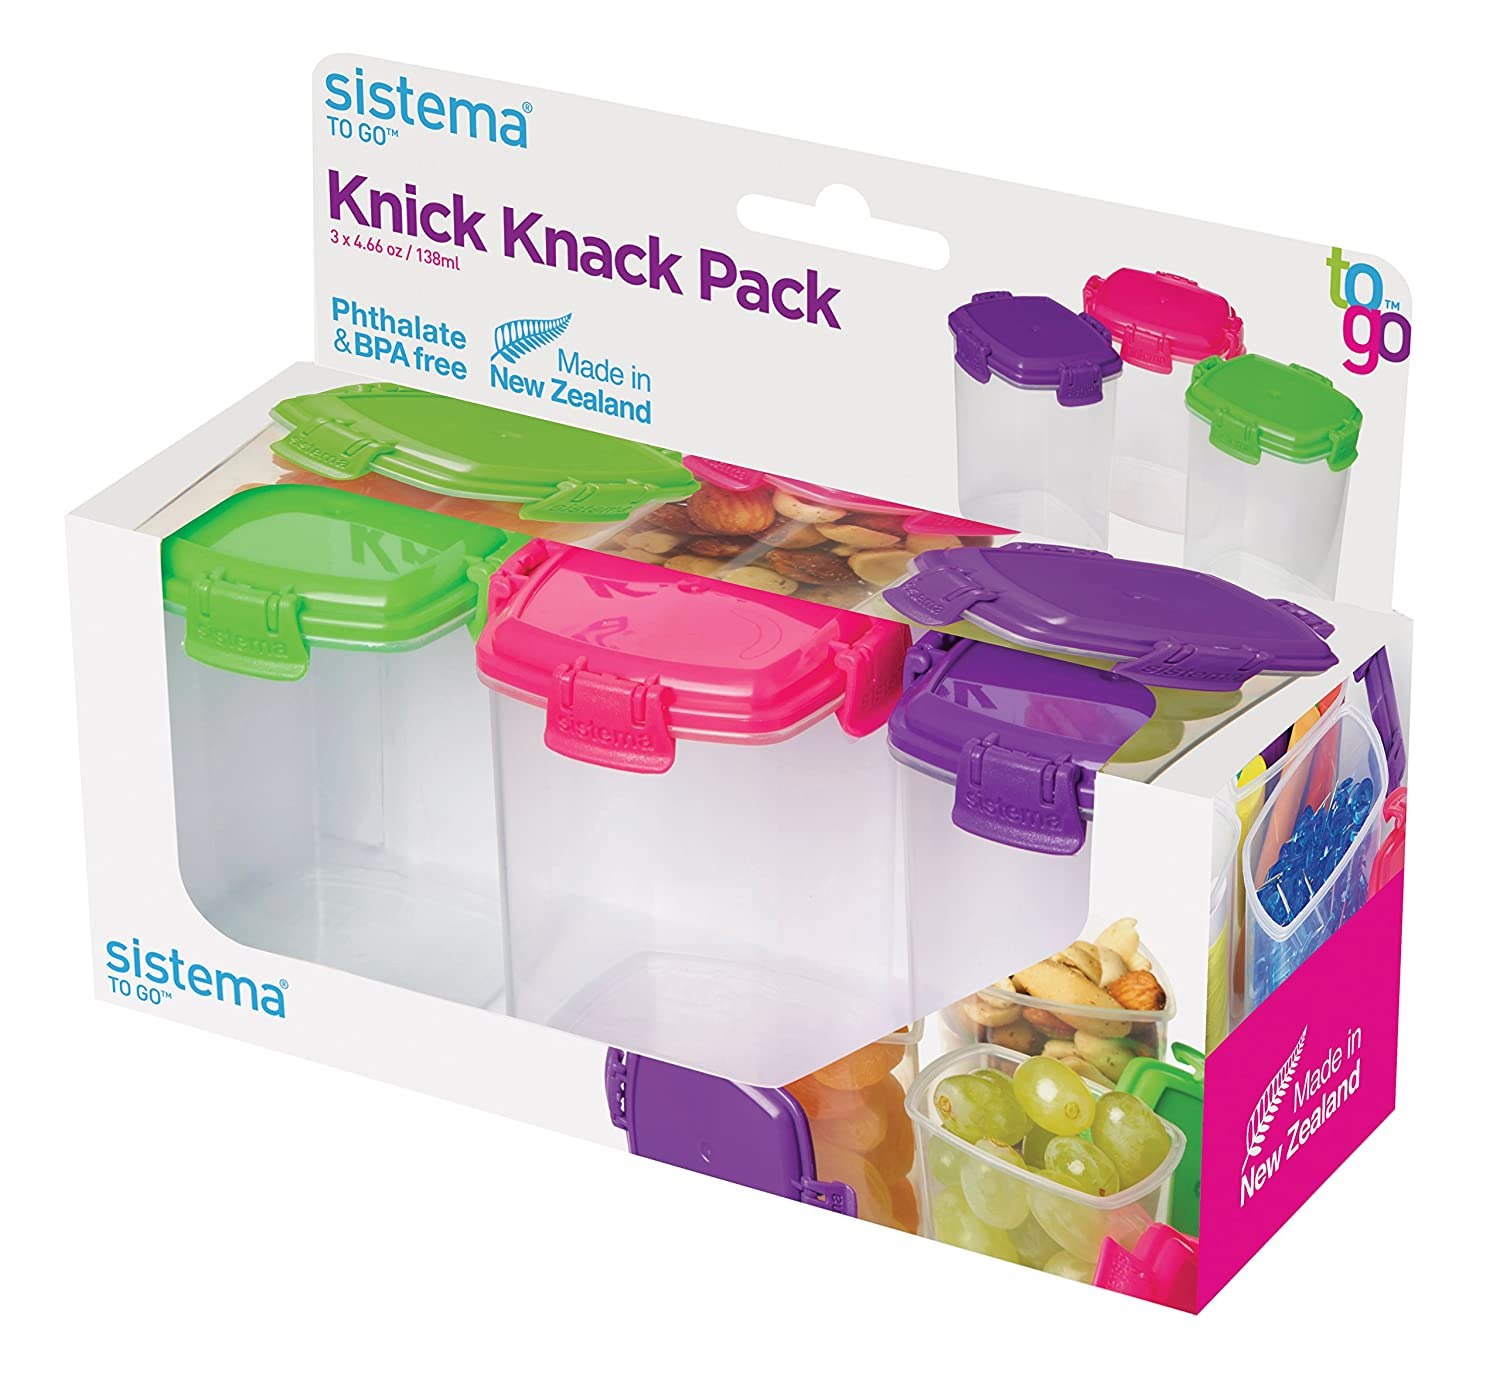 Amazon.com Sistema To Go Collection Mini Knick Knack Pack Food Storage Containers 2 Ounce each Assorted Colors Set of 4 Kitchen u0026 Dining  sc 1 st  Amazon.com & Amazon.com: Sistema To Go Collection Mini Knick Knack Pack Food ...